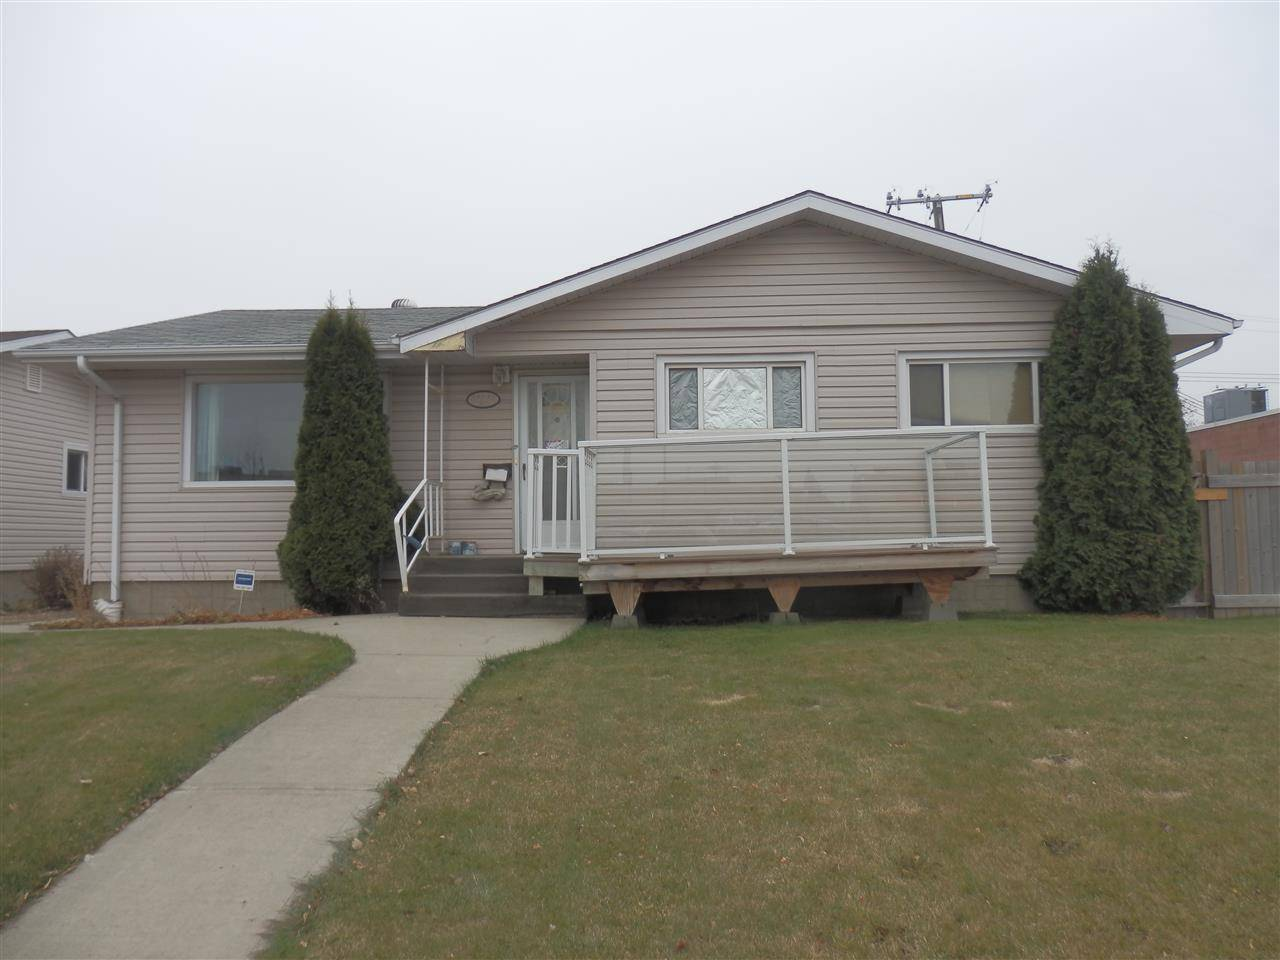 House for sale at 15735 87 Ave Nw Edmonton Alberta - MLS: E4178839